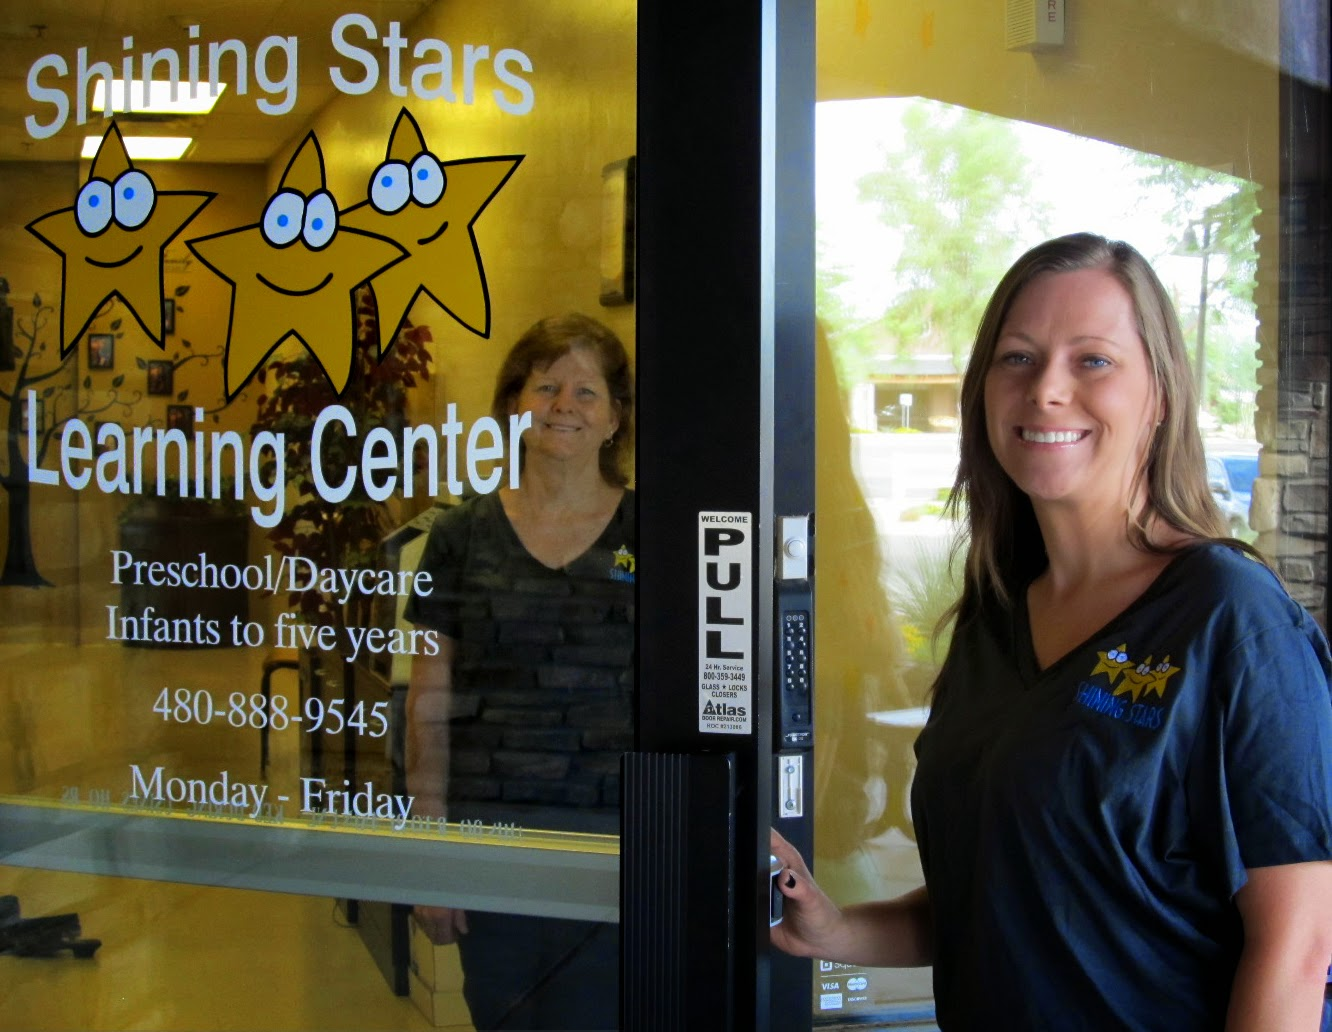 Two women pose for a picture outside of the Shining Star Learning Center building.